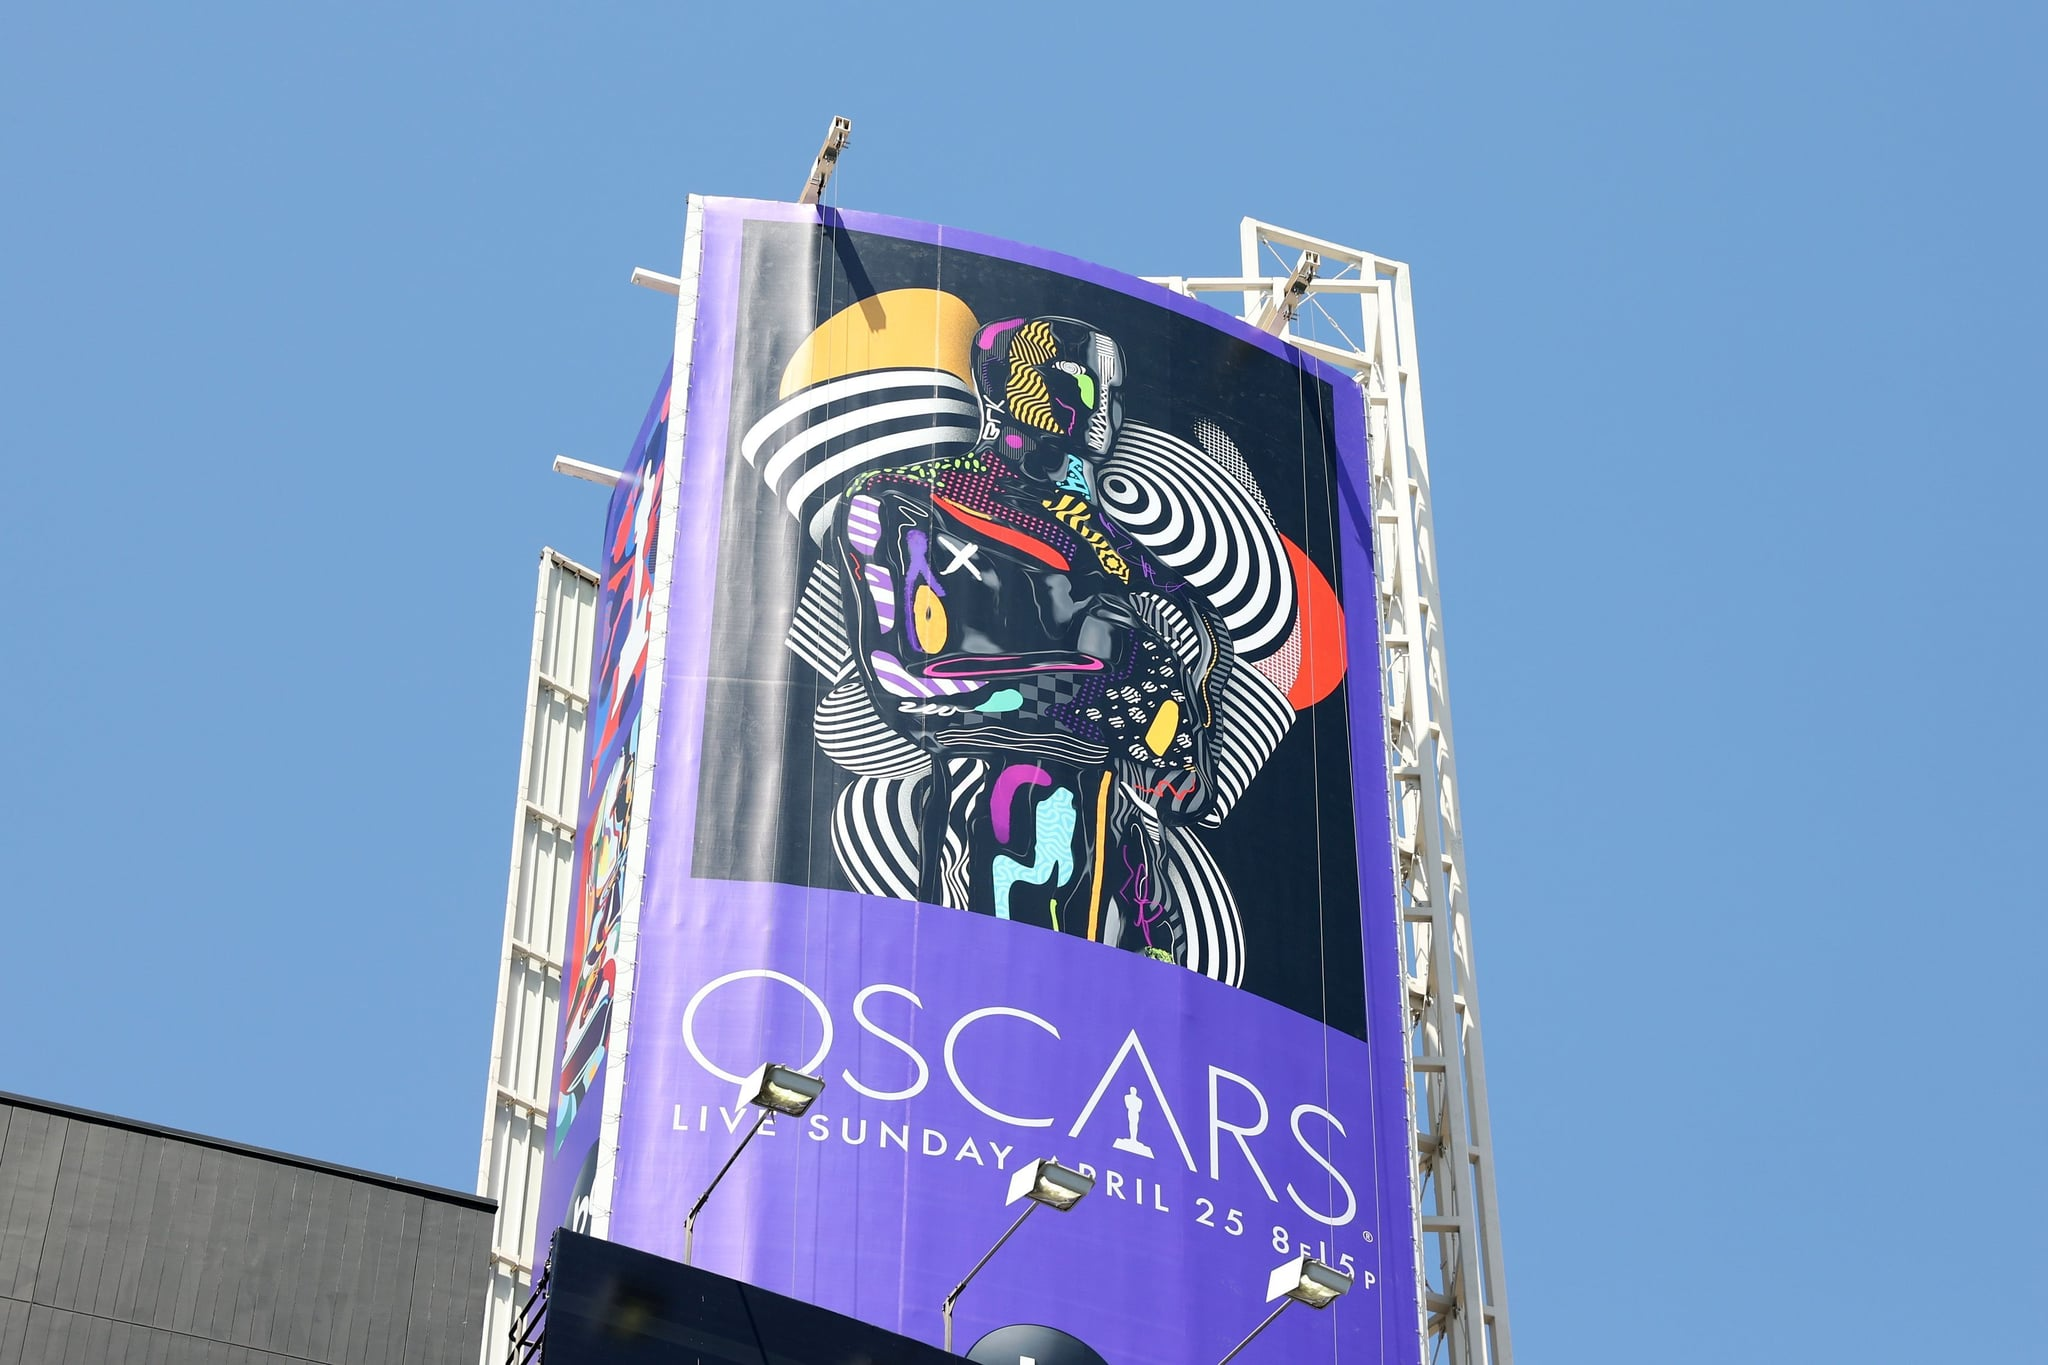 LOS ANGELES, CALIFORNIA - APRIL 19: Oscars signage is seen during preparations for the 93rd Annual Academy Awards on April 19, 2021 in Los Angeles, California. (Photo by Amy Sussman/Getty Images)